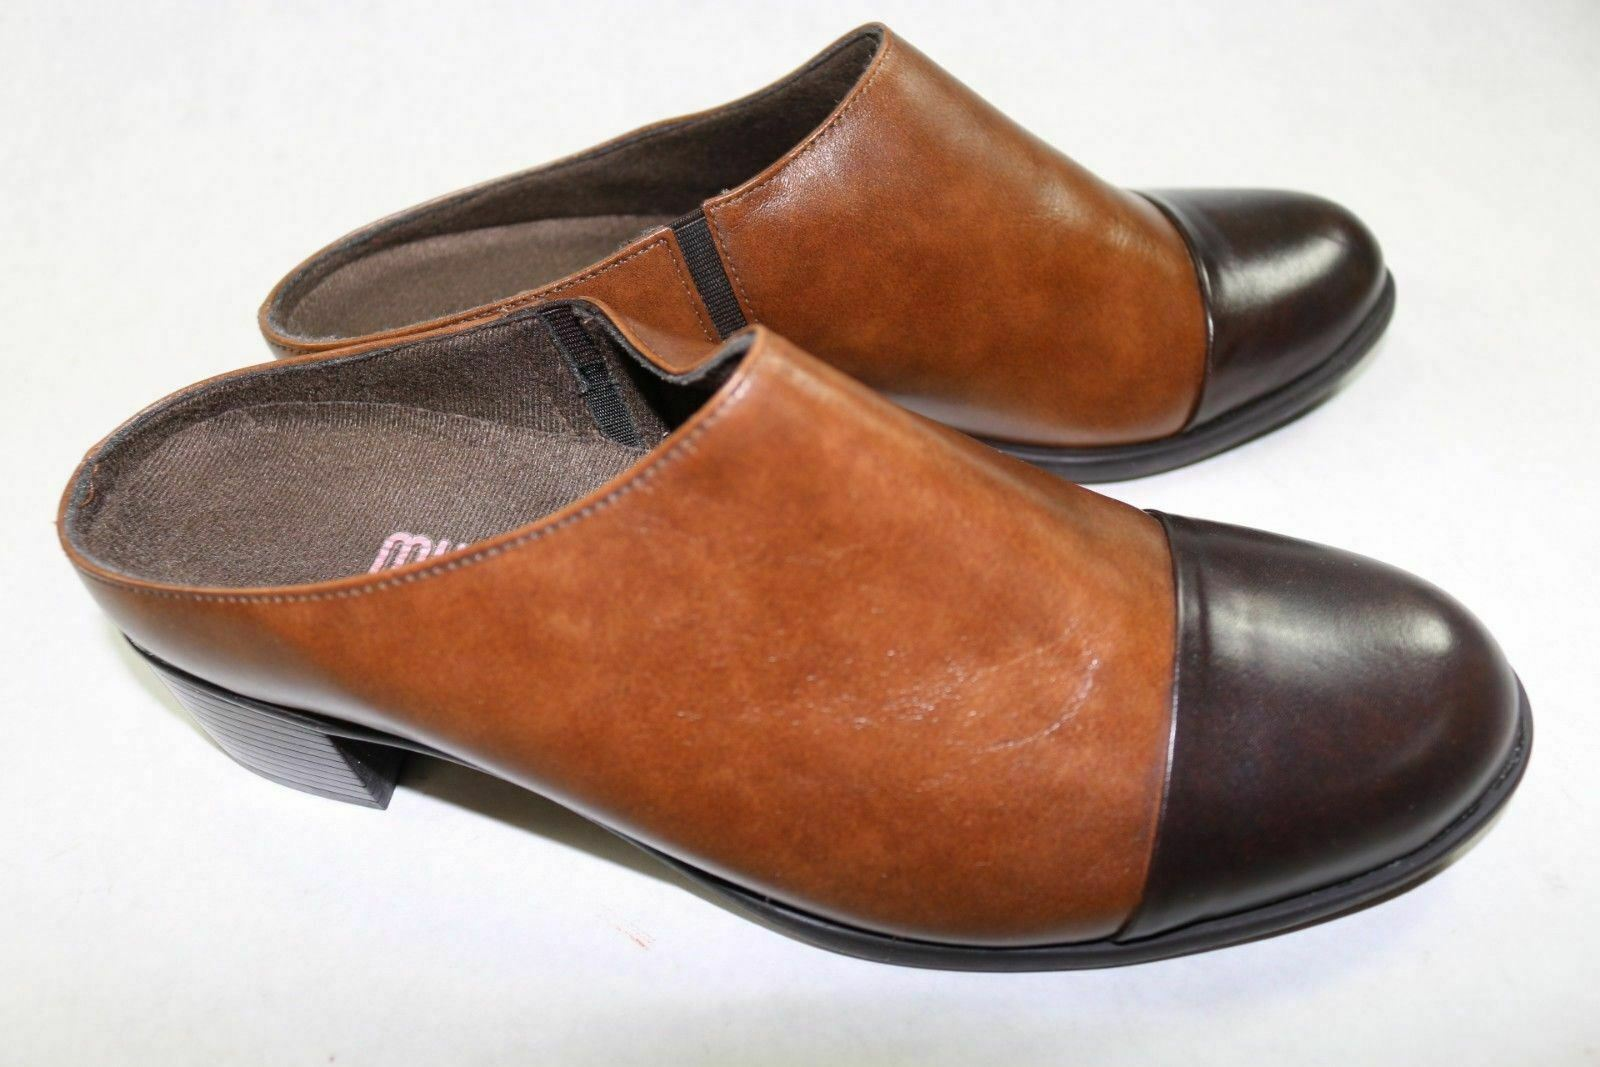 Women's 8.5 M Munro Brown Leather Mules New Clogs Cap Toe A125